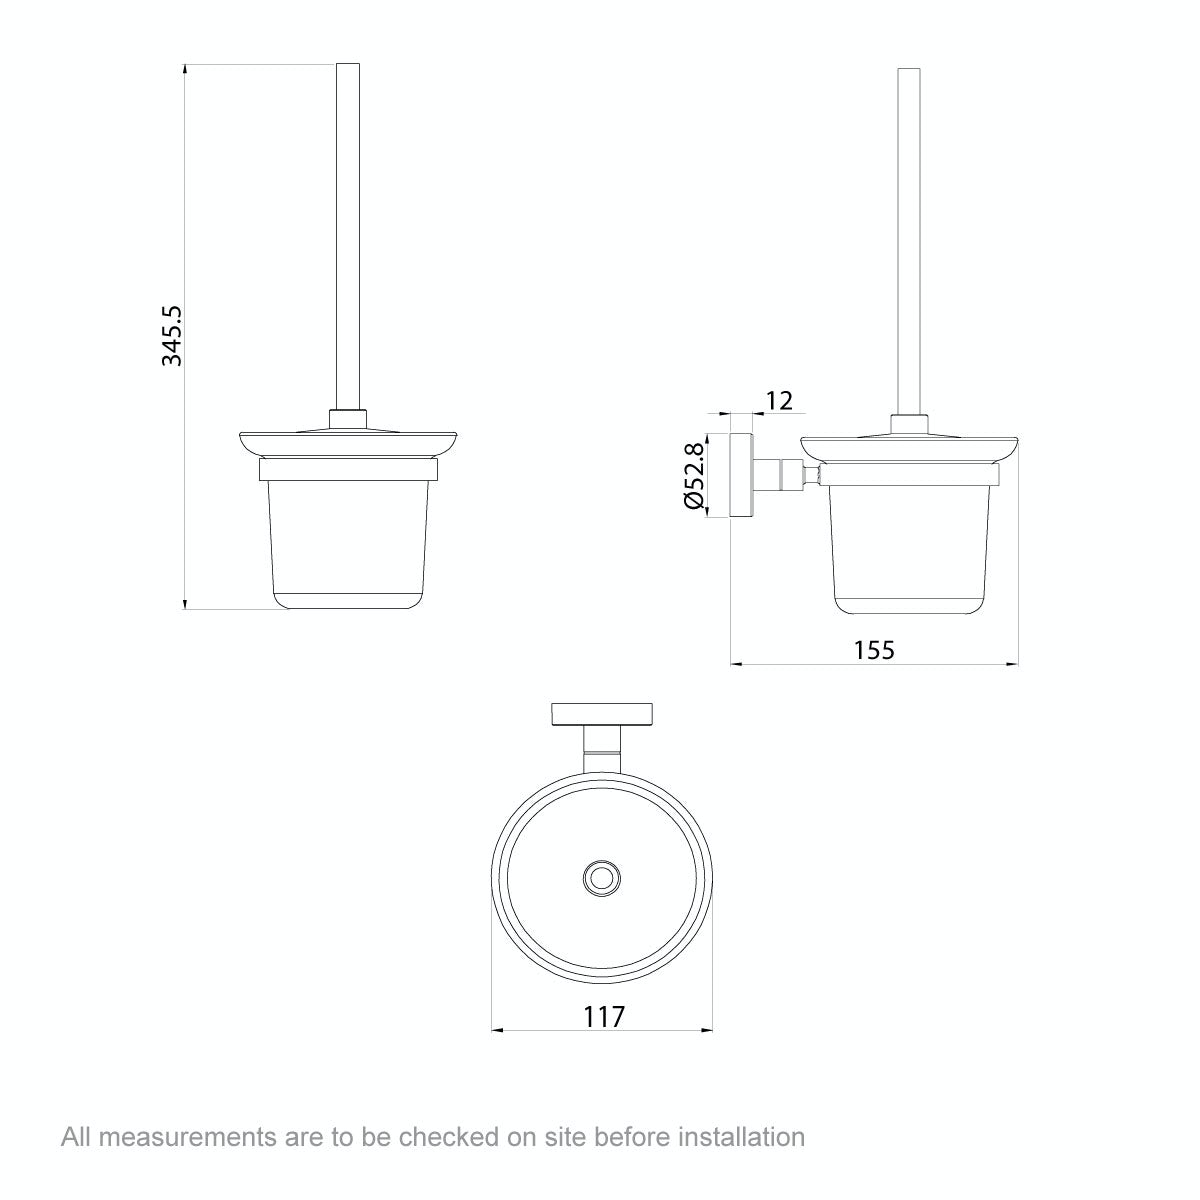 Dimensions for Orchard Lunar toilet brush and holder